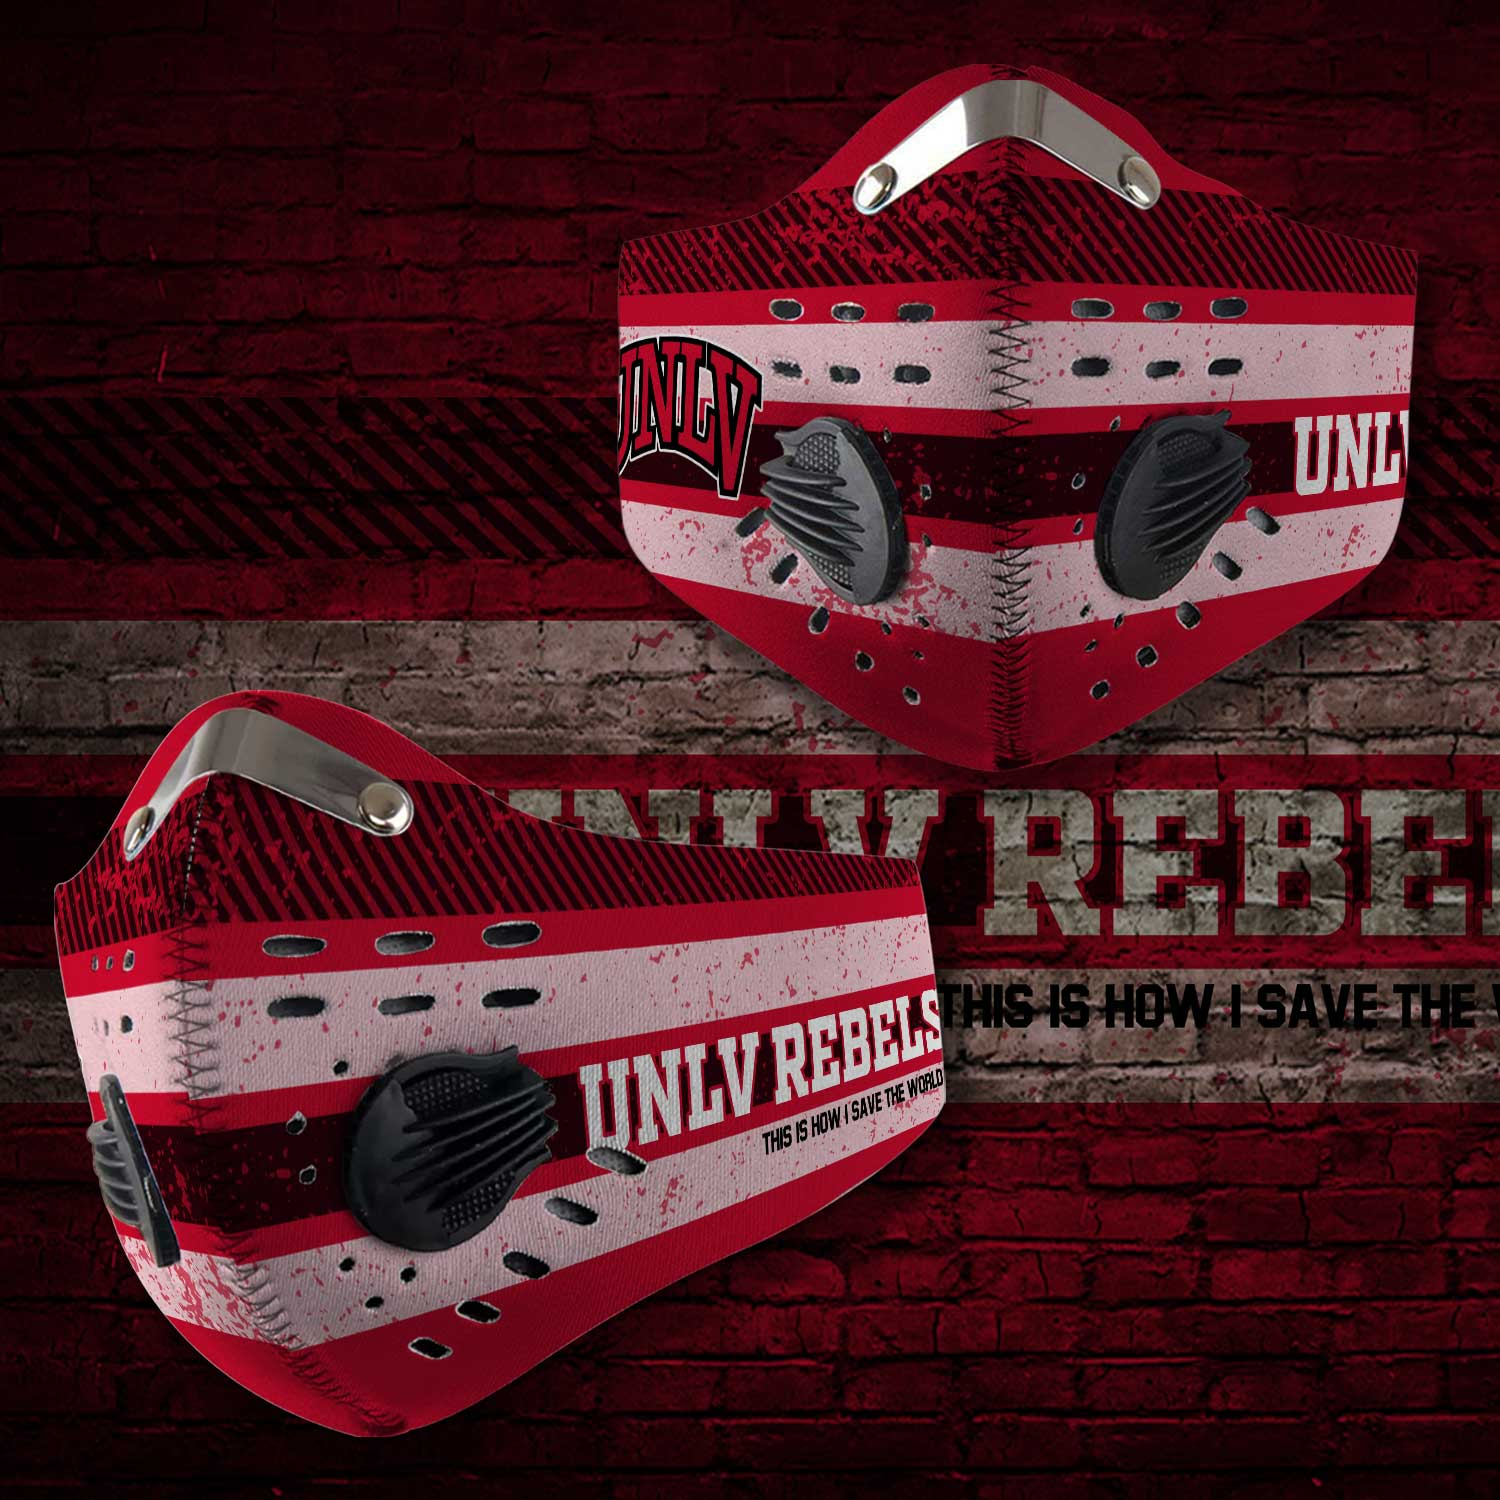 UNLV rebels this is how i save the world carbon filter face mask 1